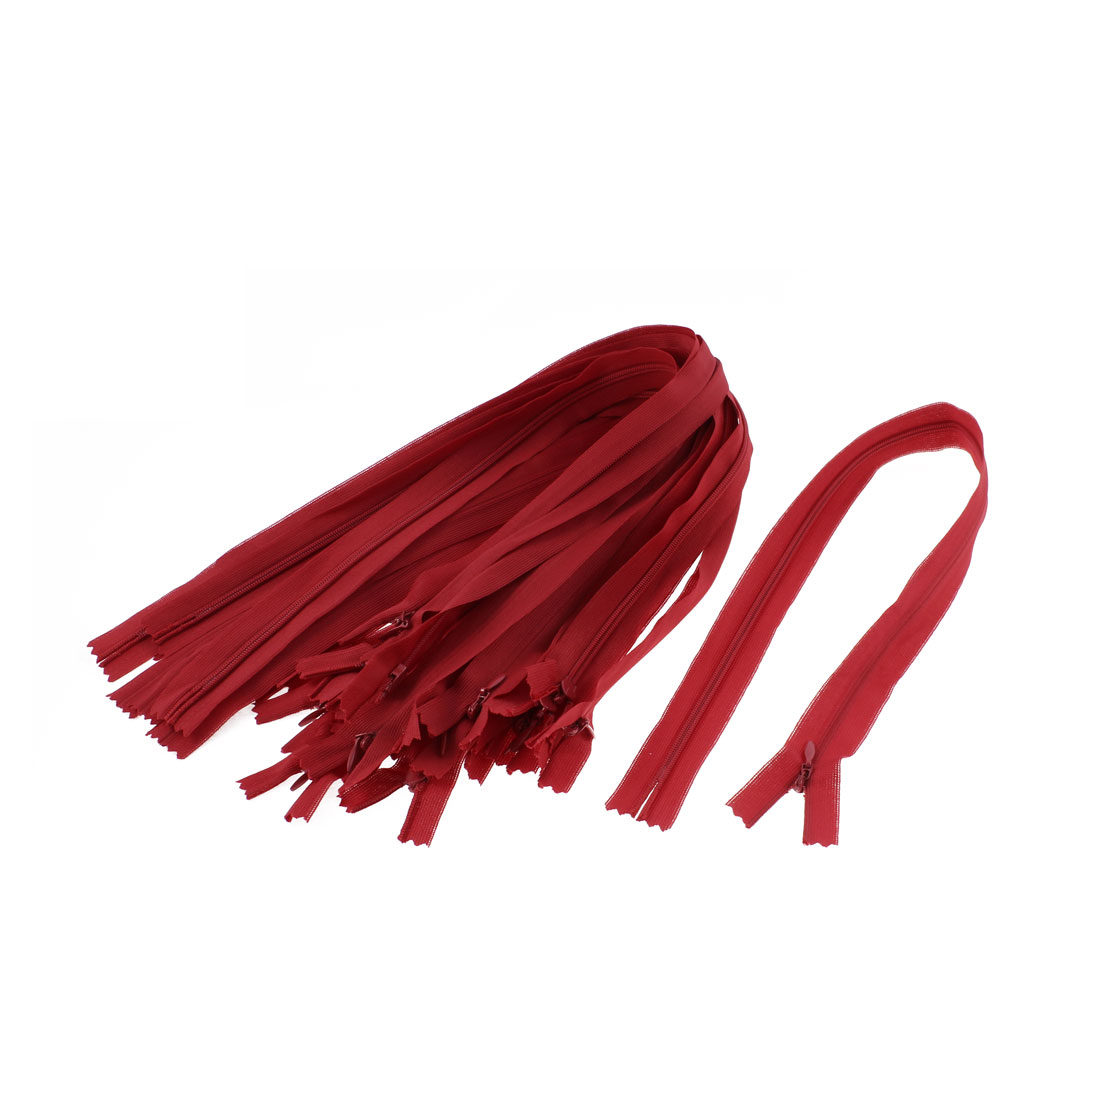 Dress Pants Closed End Nylon Zippers Tailor Sewing Craft Tool Red 50cm 20 Pcs